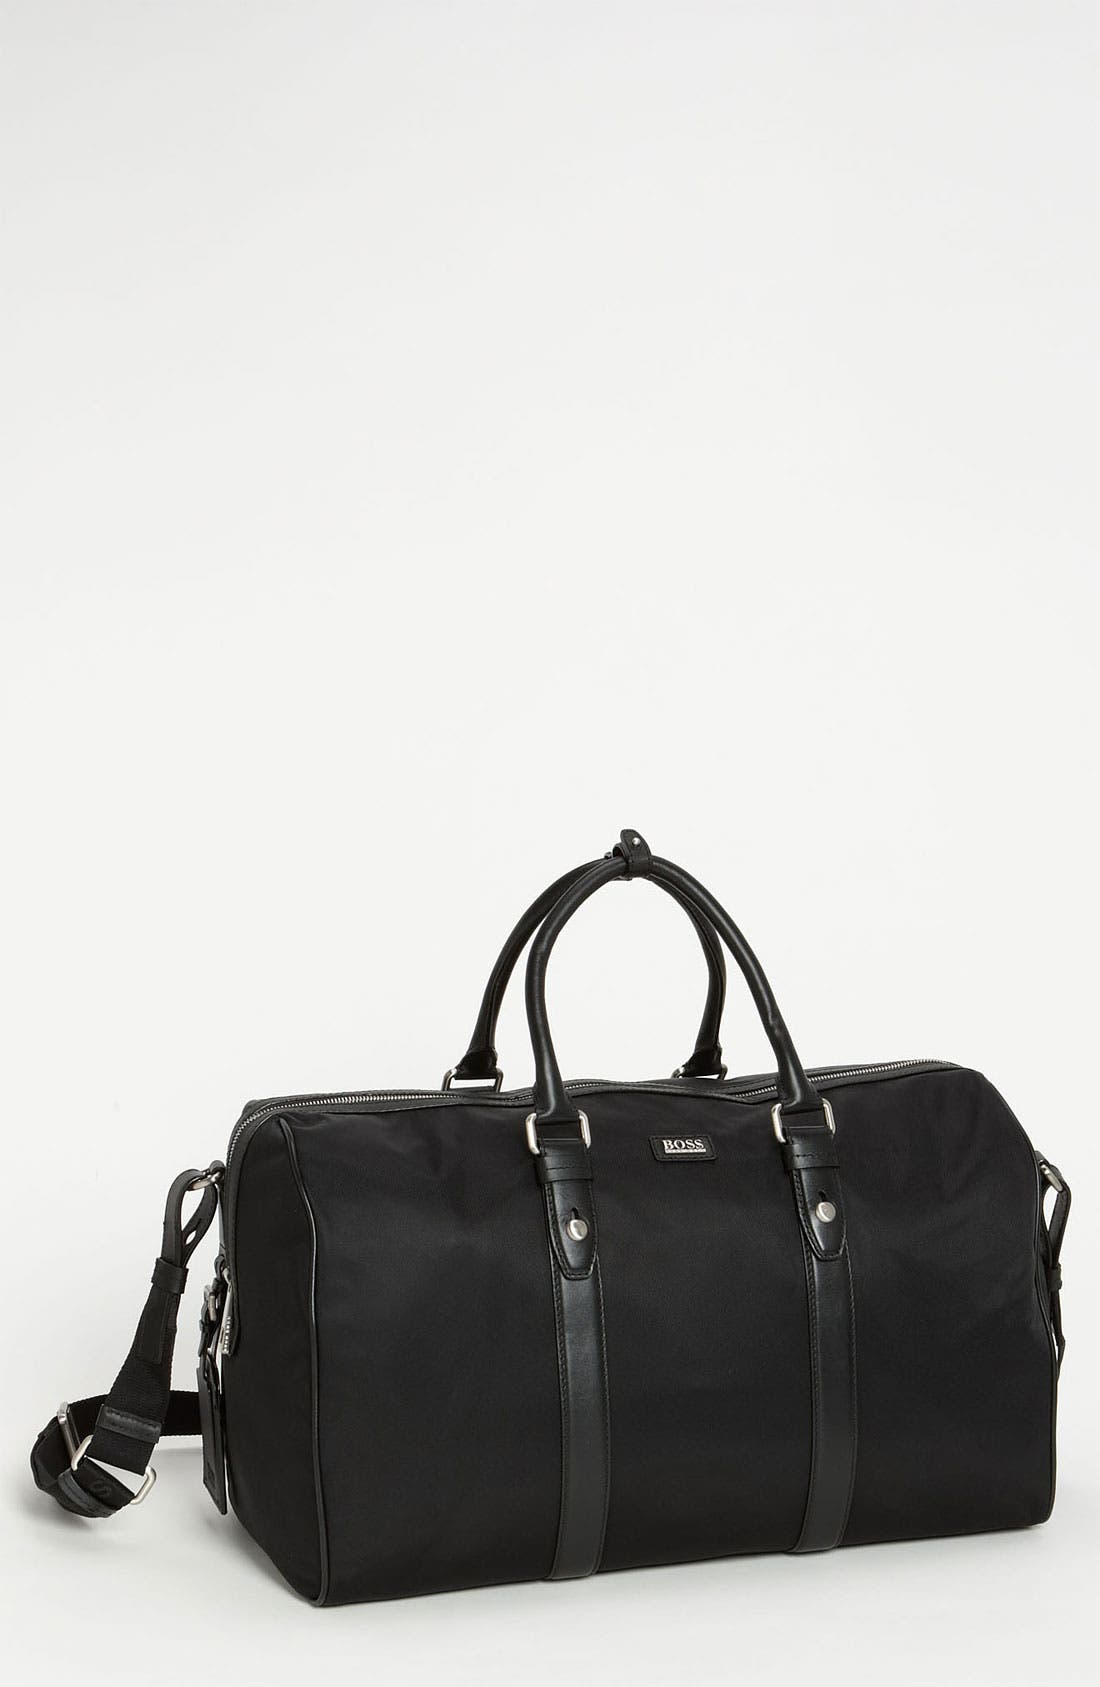 Alternate Image 1 Selected - BOSS Black 'Teddi' Duffel Bag